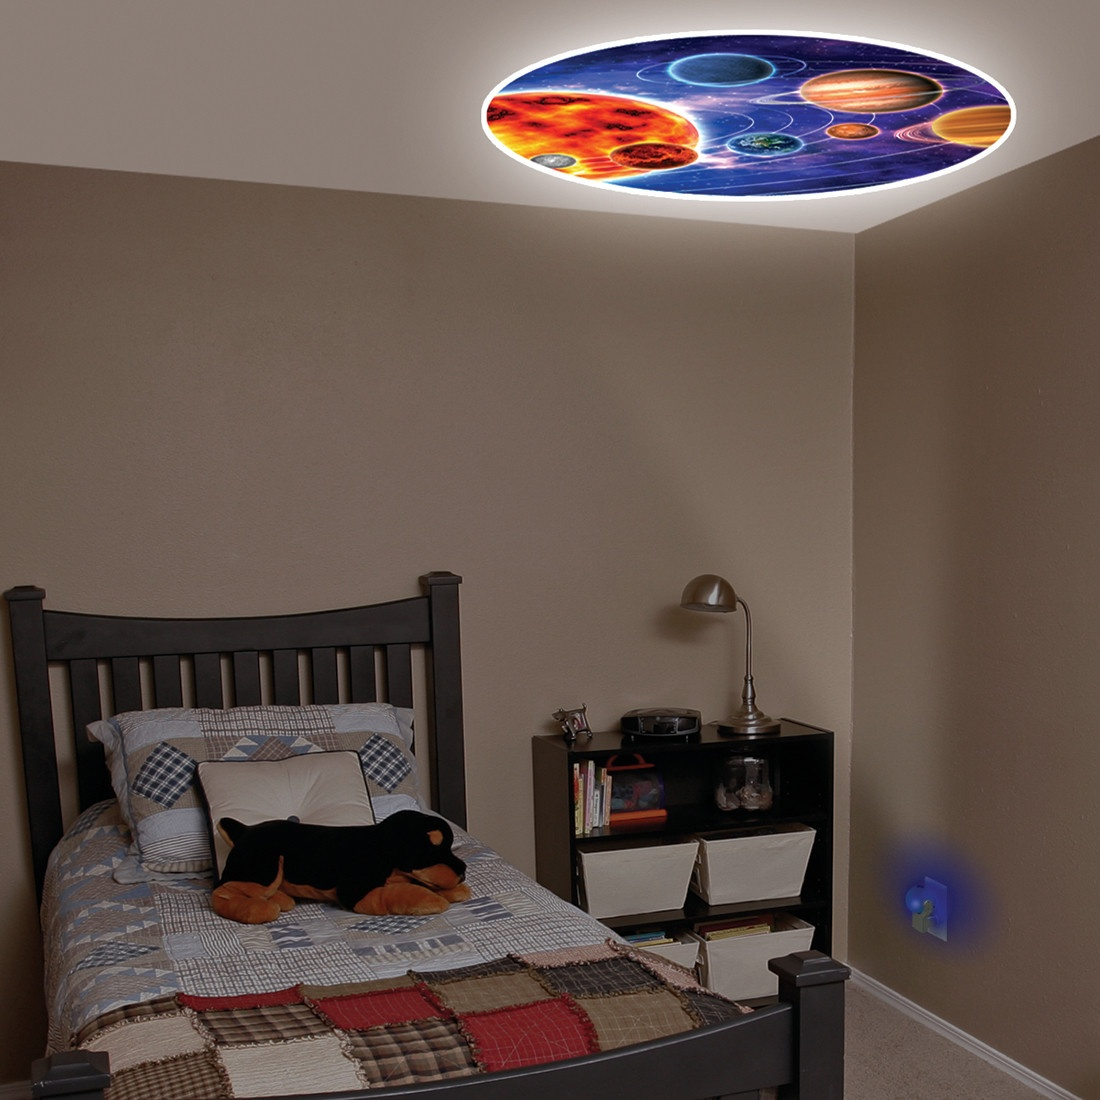 Projectable Night Light casts solar system image on the ceiling